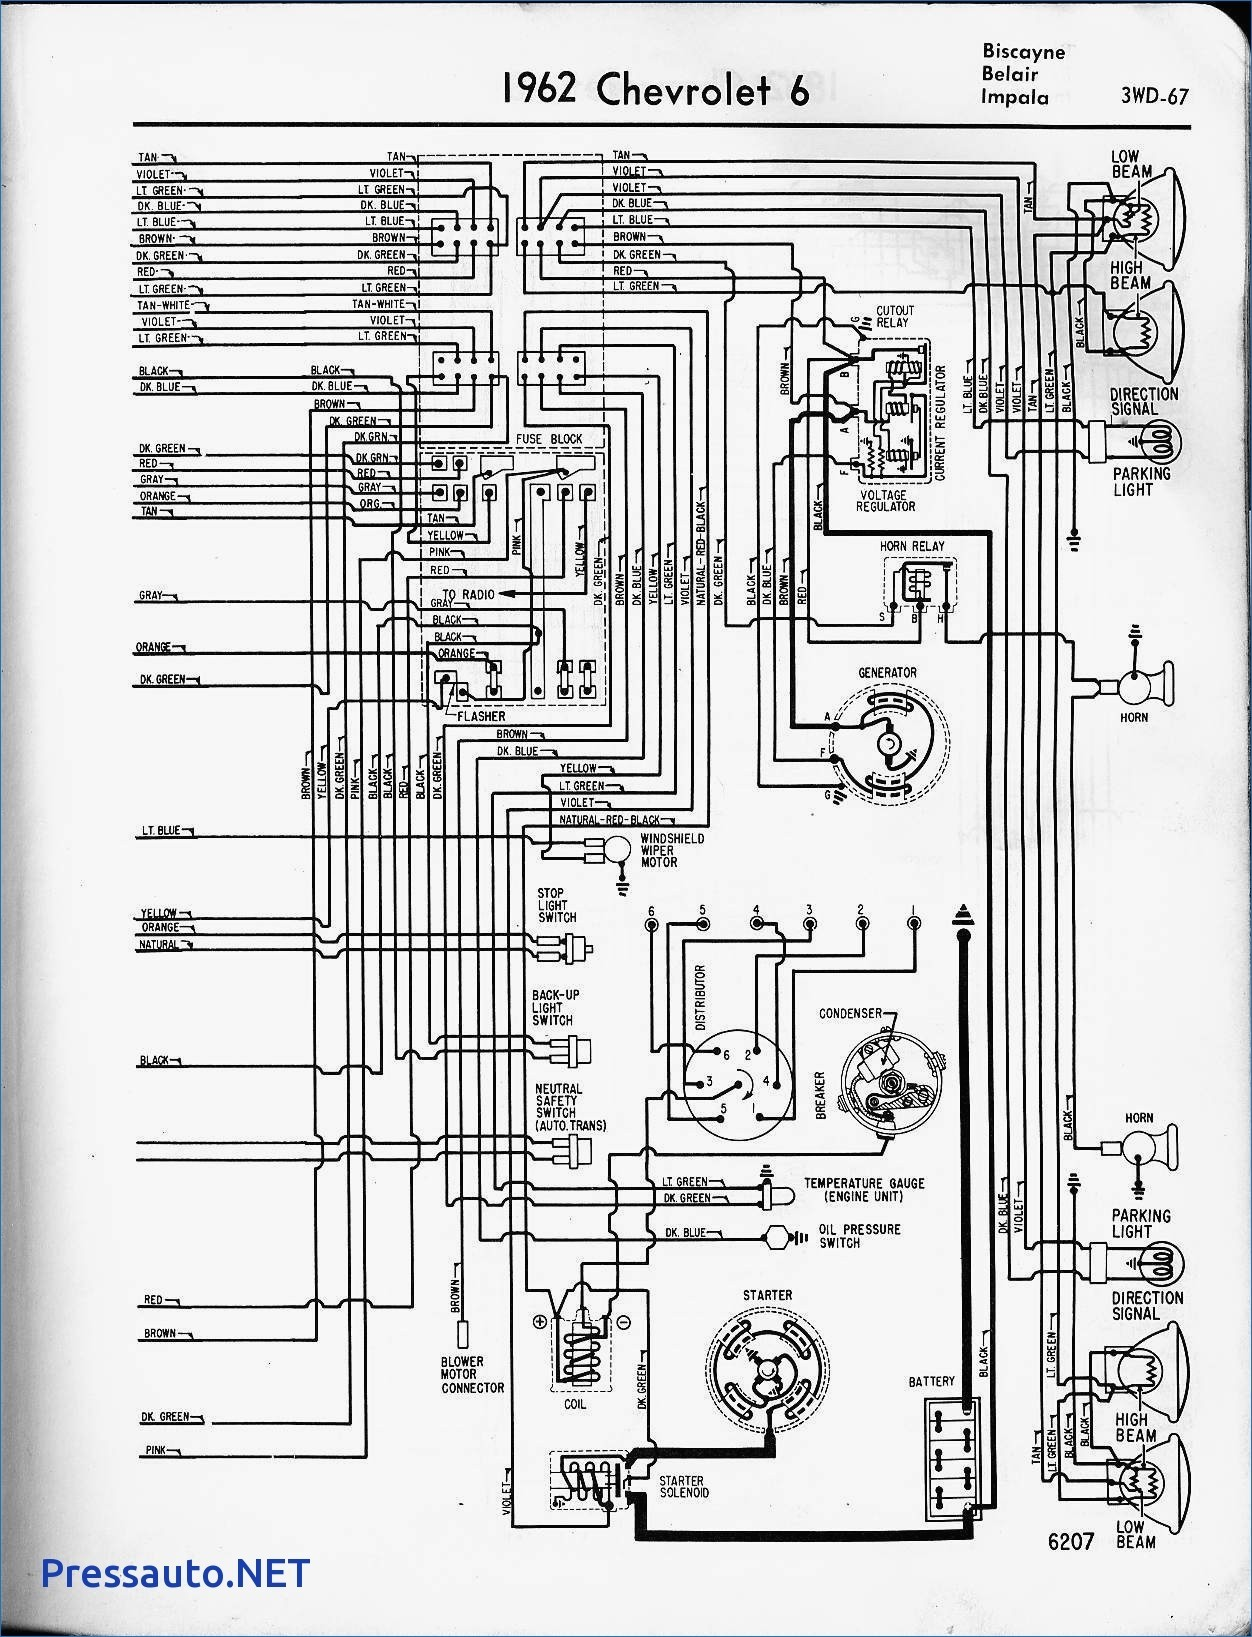 1961 Chevrolet Fuse Block Diagram | Wiring Diagram